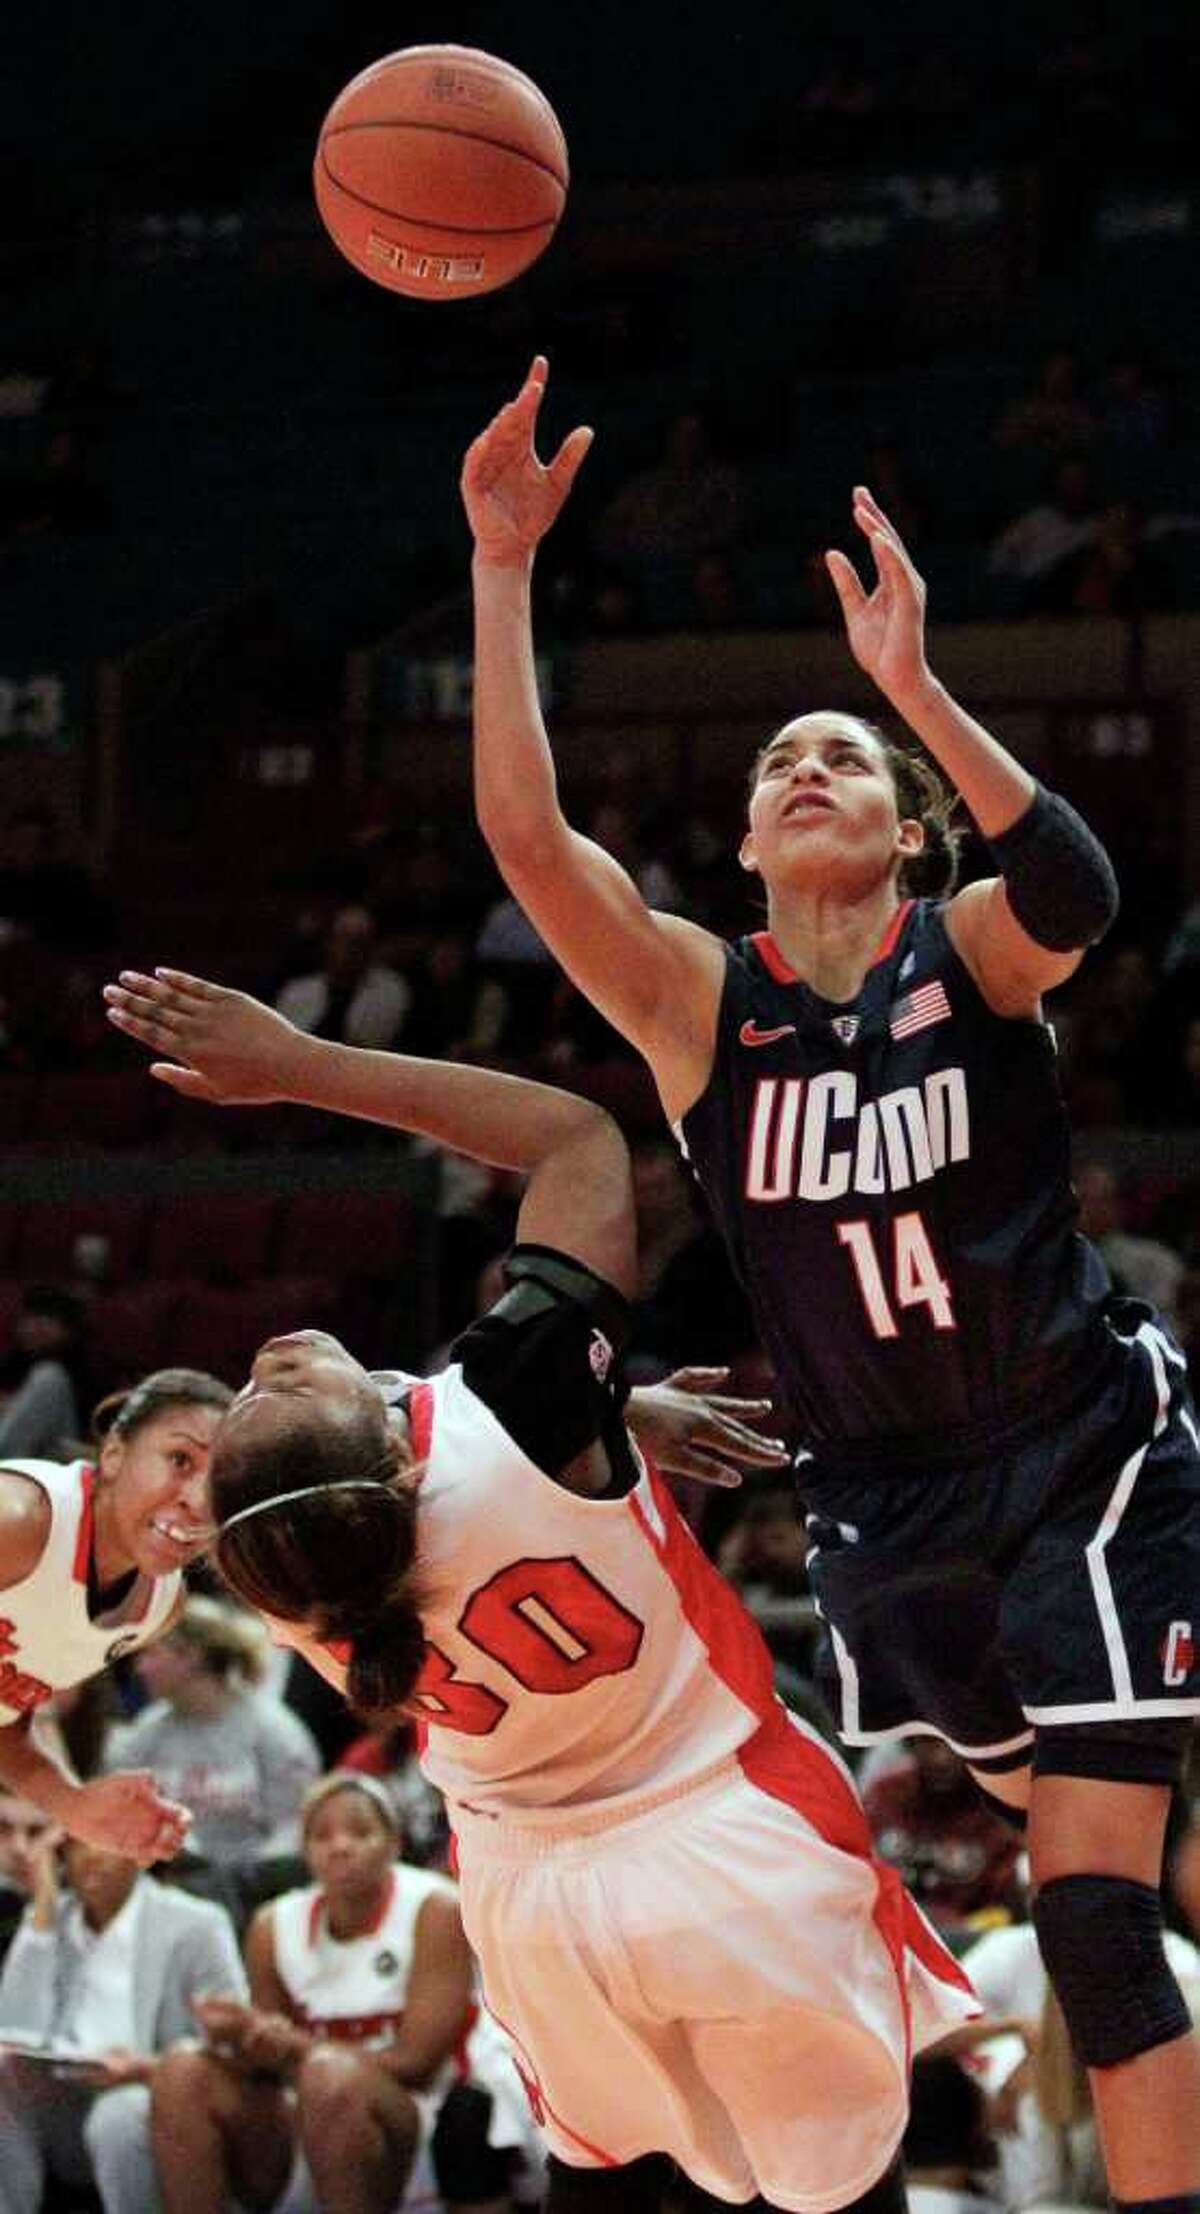 Connecticut's Bria Hartley (14) shoots as St. John's Centhya Hart (30) defends during the first half of an NCAA college basketball game, Wednesday, Jan. 12, 2011, in New York. (AP Photo/Frank Franklin II)